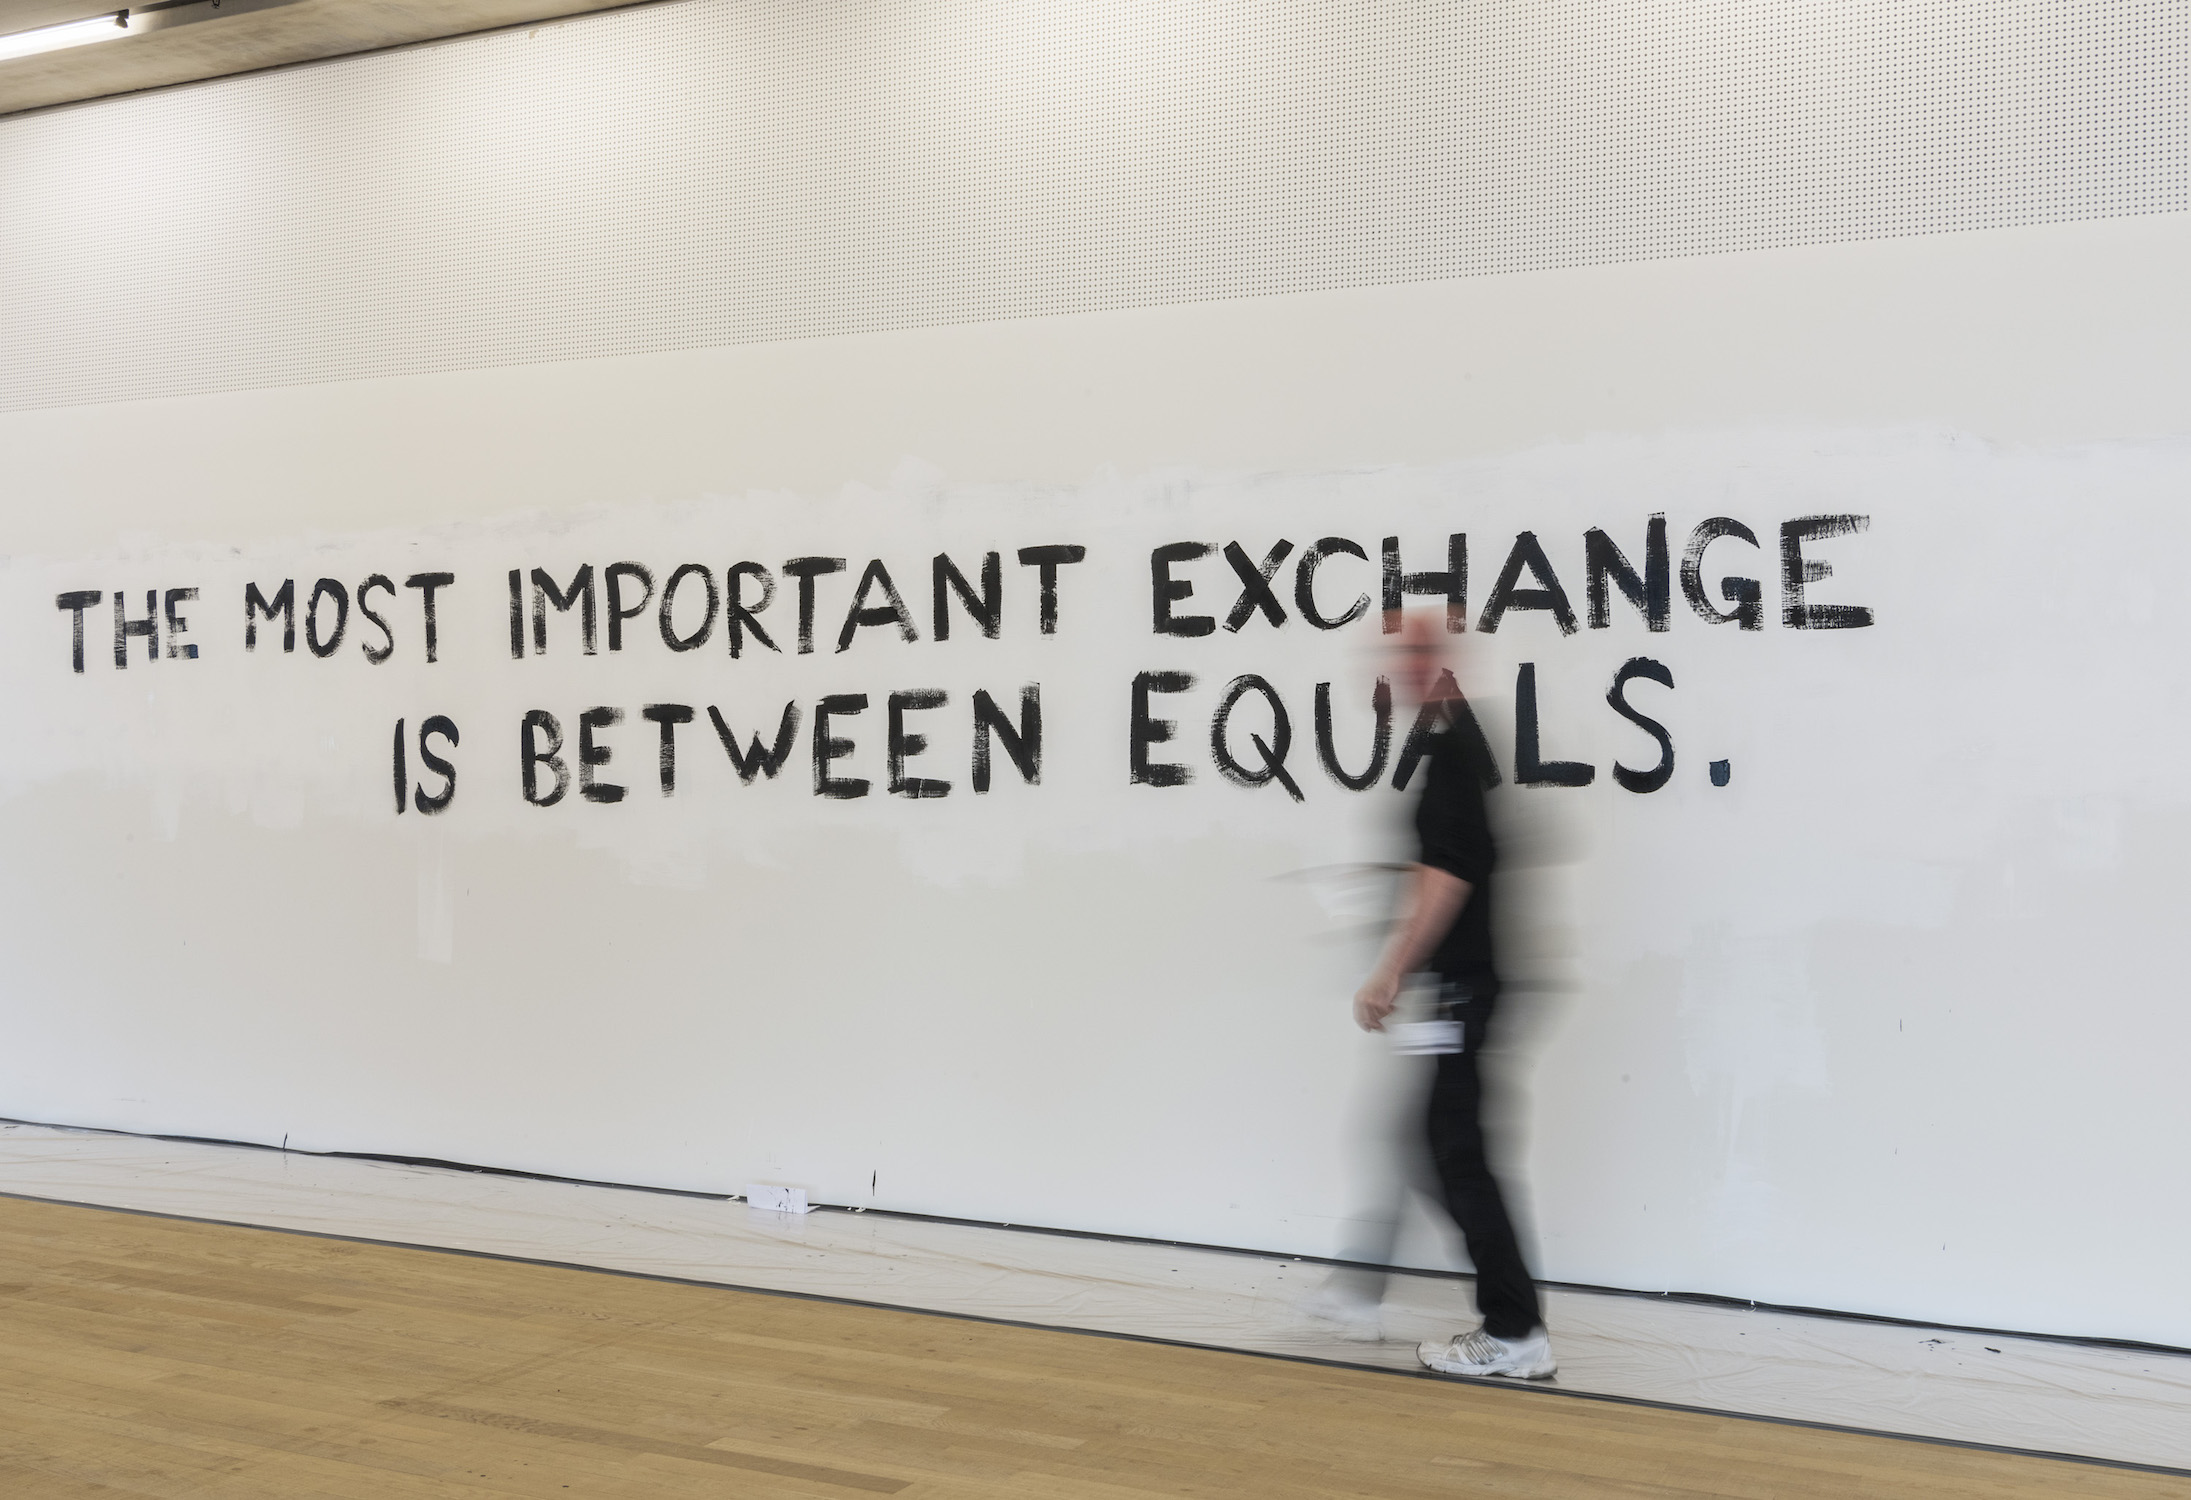 Tim Etchells, Further Provocations, 2016. Wall painting performance. Part of The Give & Take at TATE Exchange.